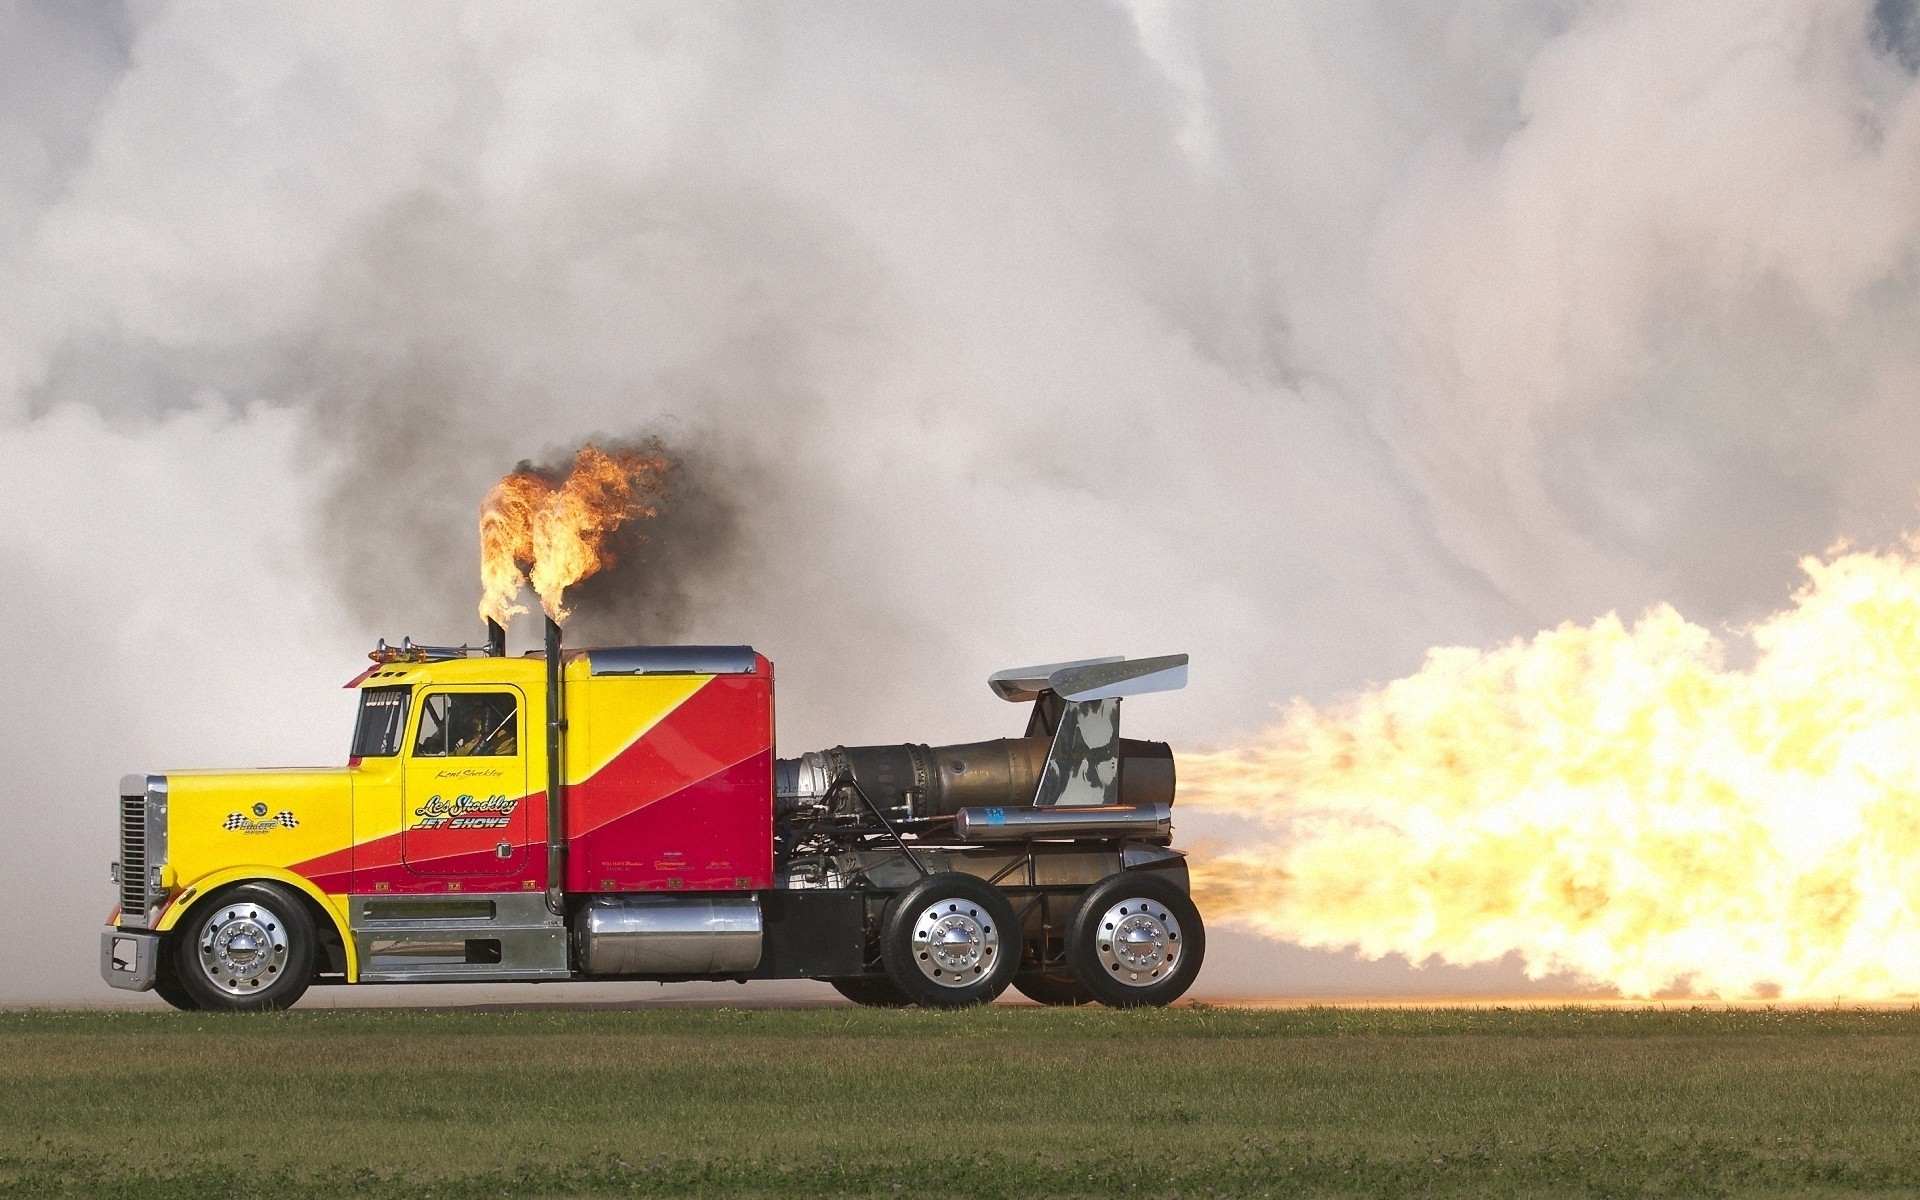 drag racing wallpaper | Vehicles – Drag Racing – Truck – Jet – Fire – Flame